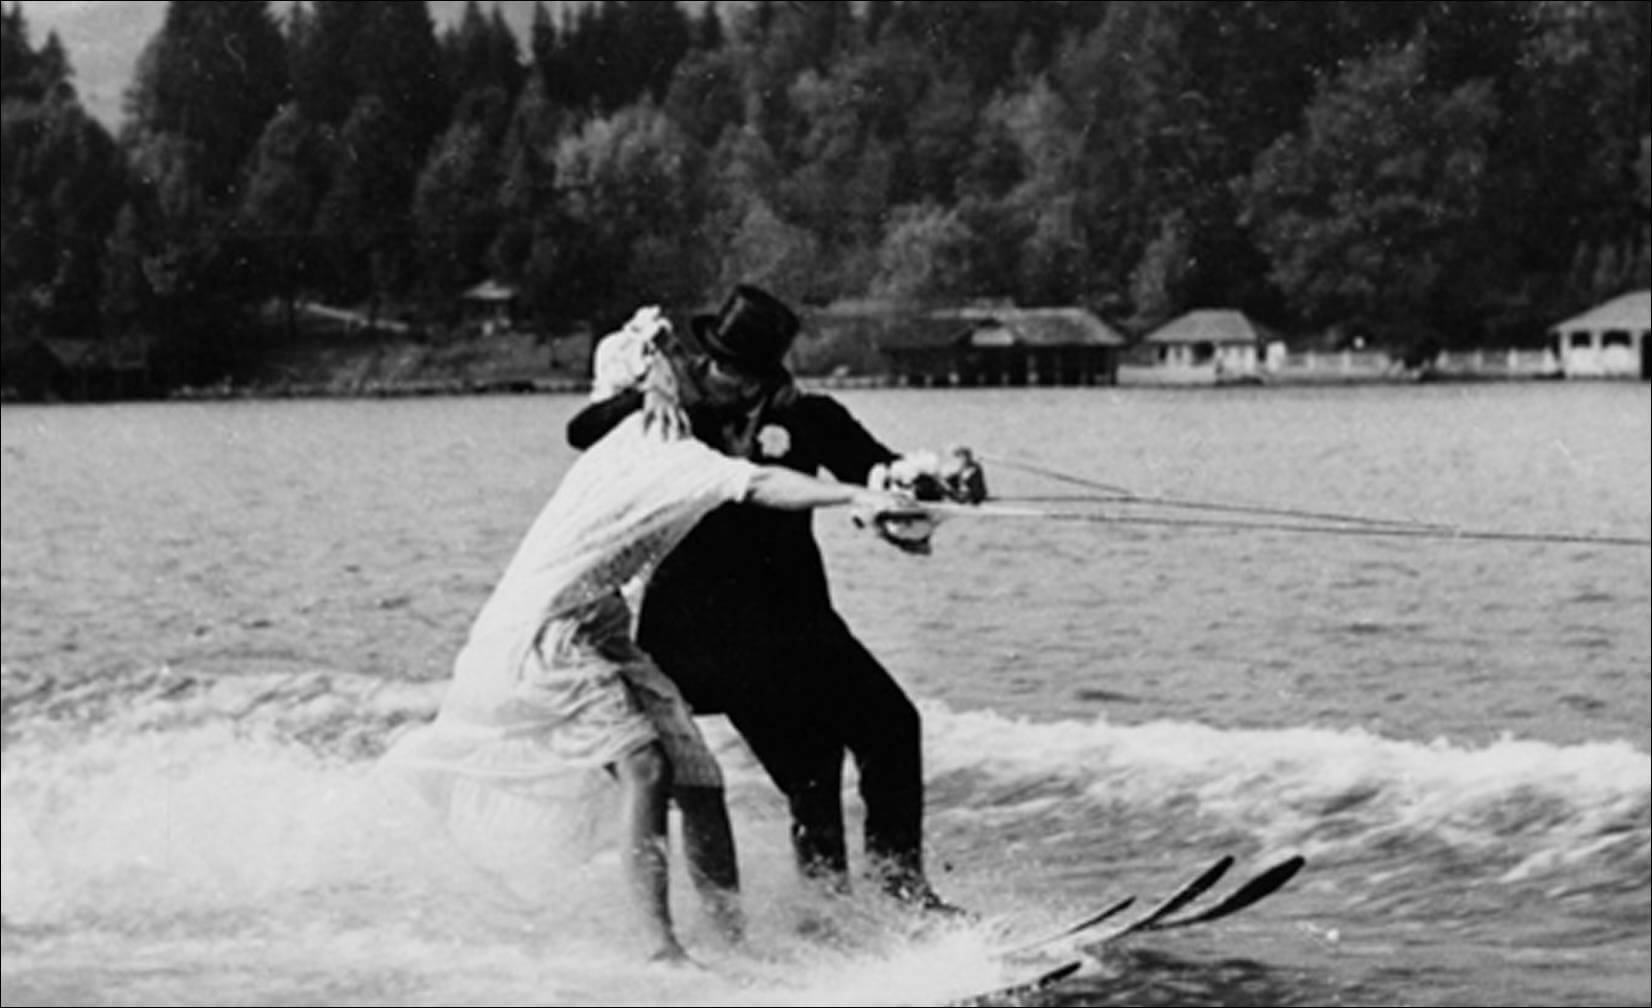 kiss while waterskiing in their wedding attire